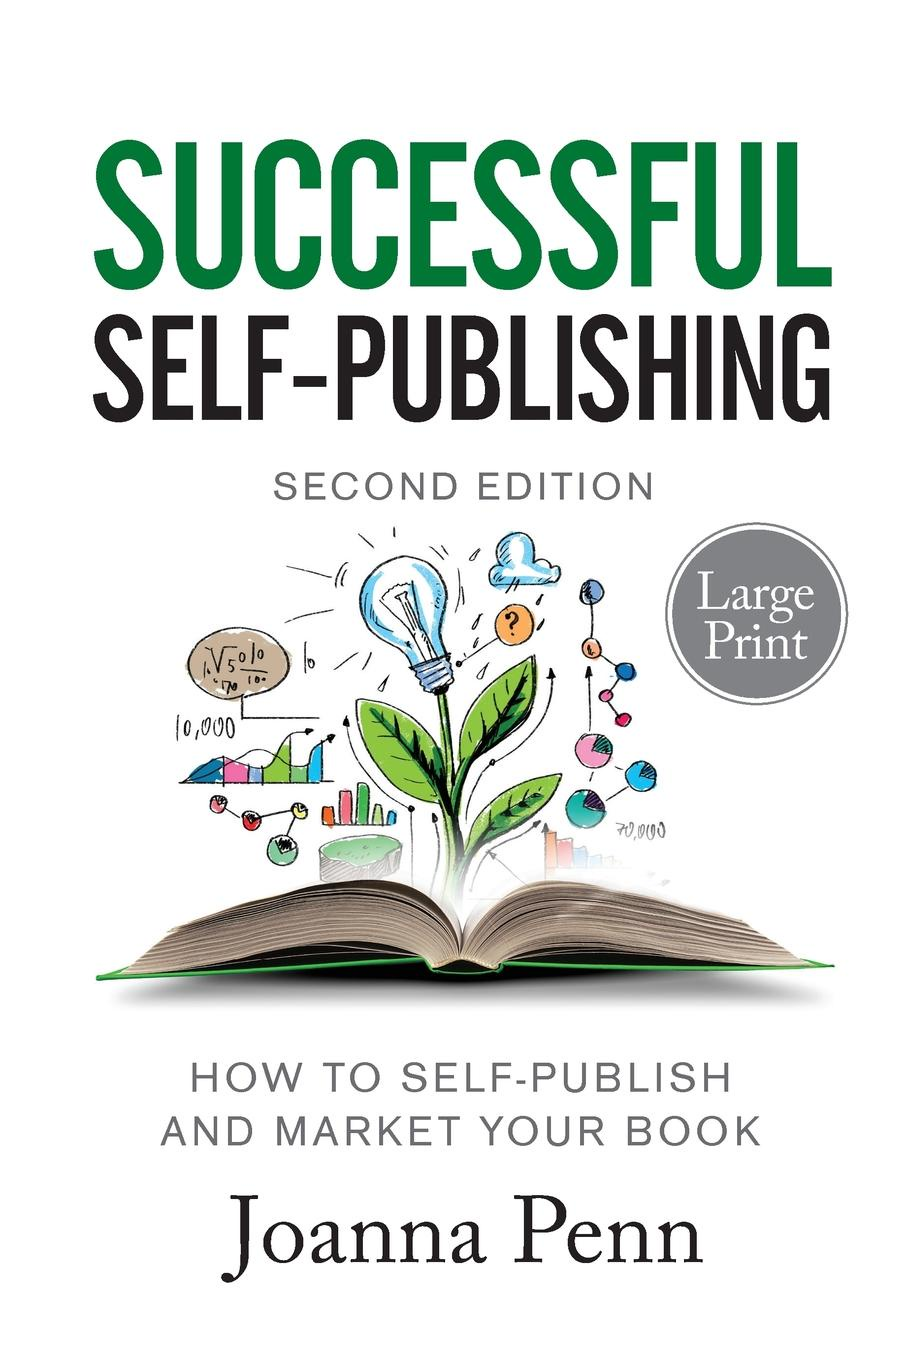 Joanna Penn Successful Self-Publishing Large Print Edition. How to self-publish and market your book in ebook, print, and audiobook keven ashley gambold how to blow a million dollars an ex entrepreneur s tale of what not to do